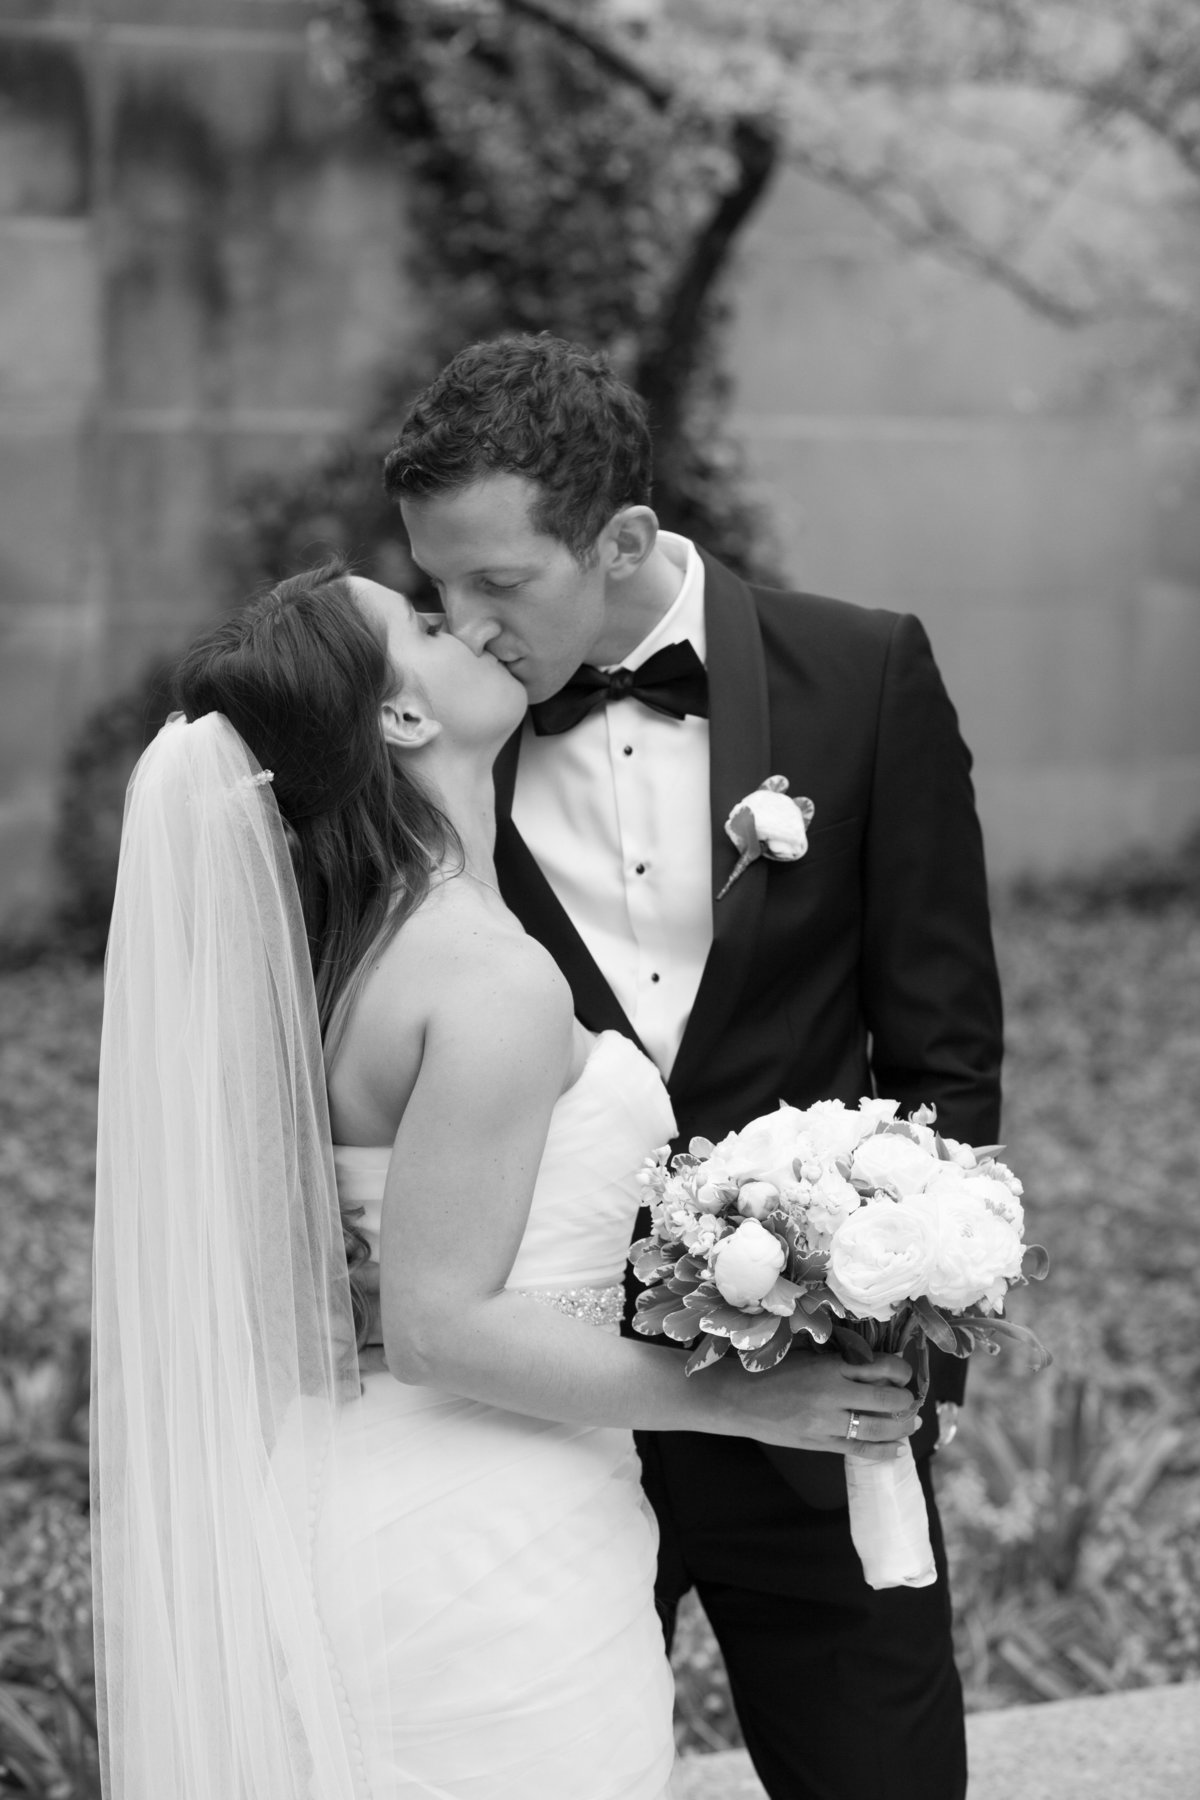 Nicole and Paul Wedding - Natalie Probst Photography 532